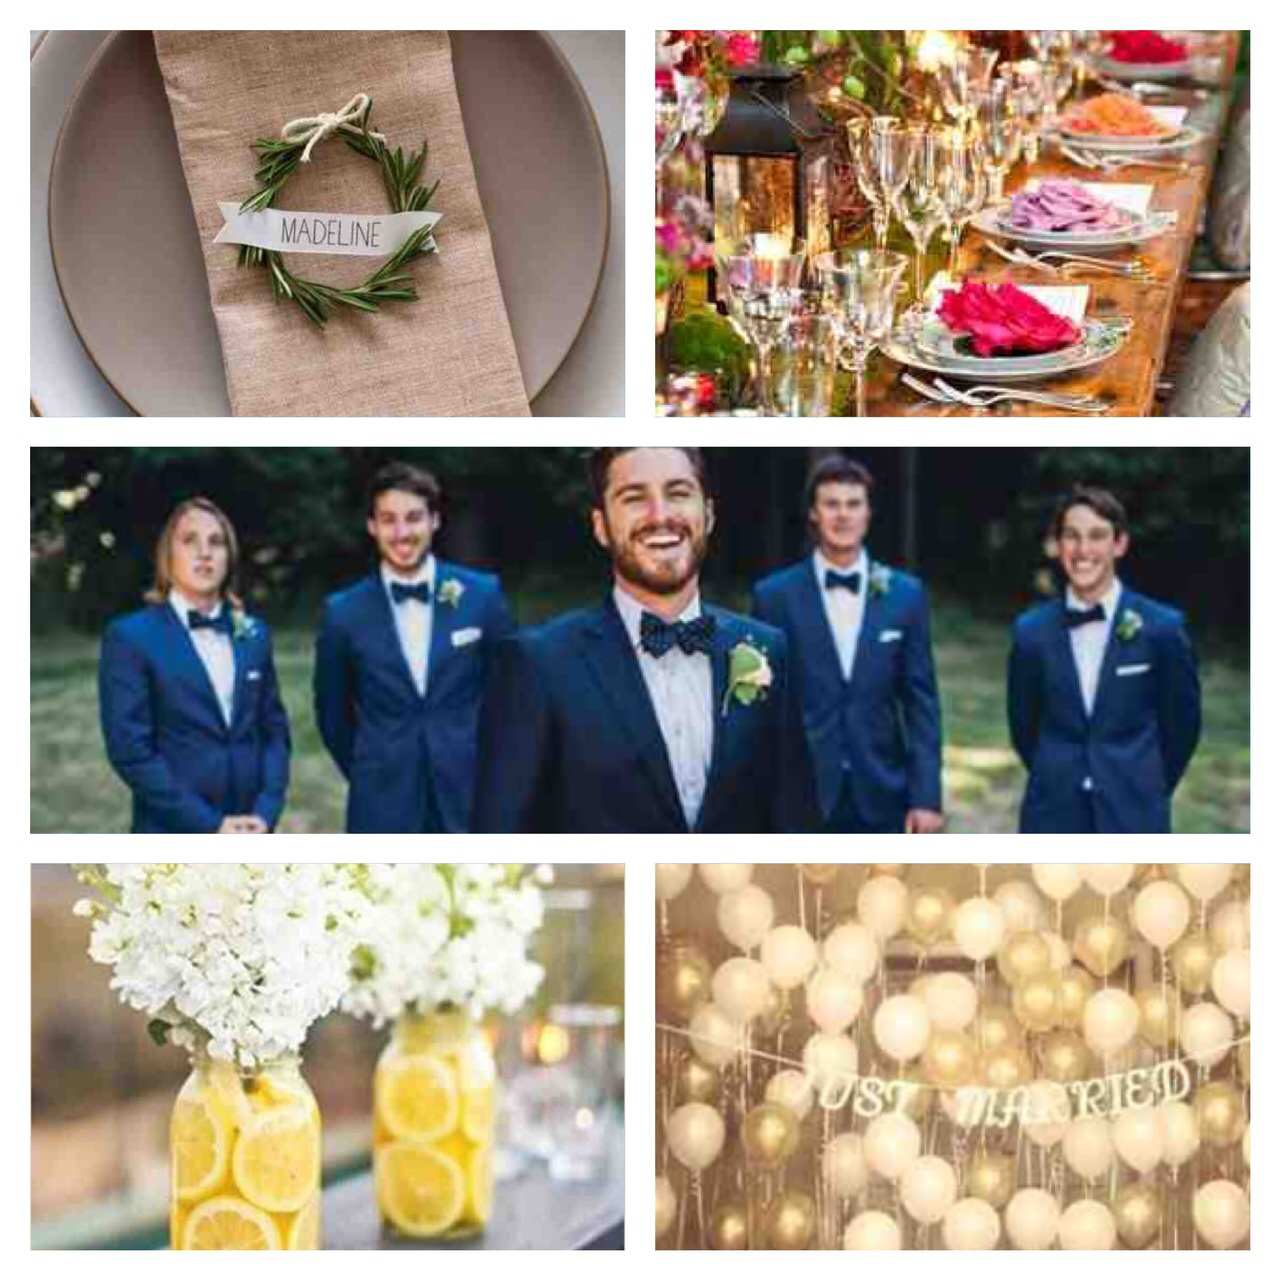 Weddings | The Utter Blog | Page 2